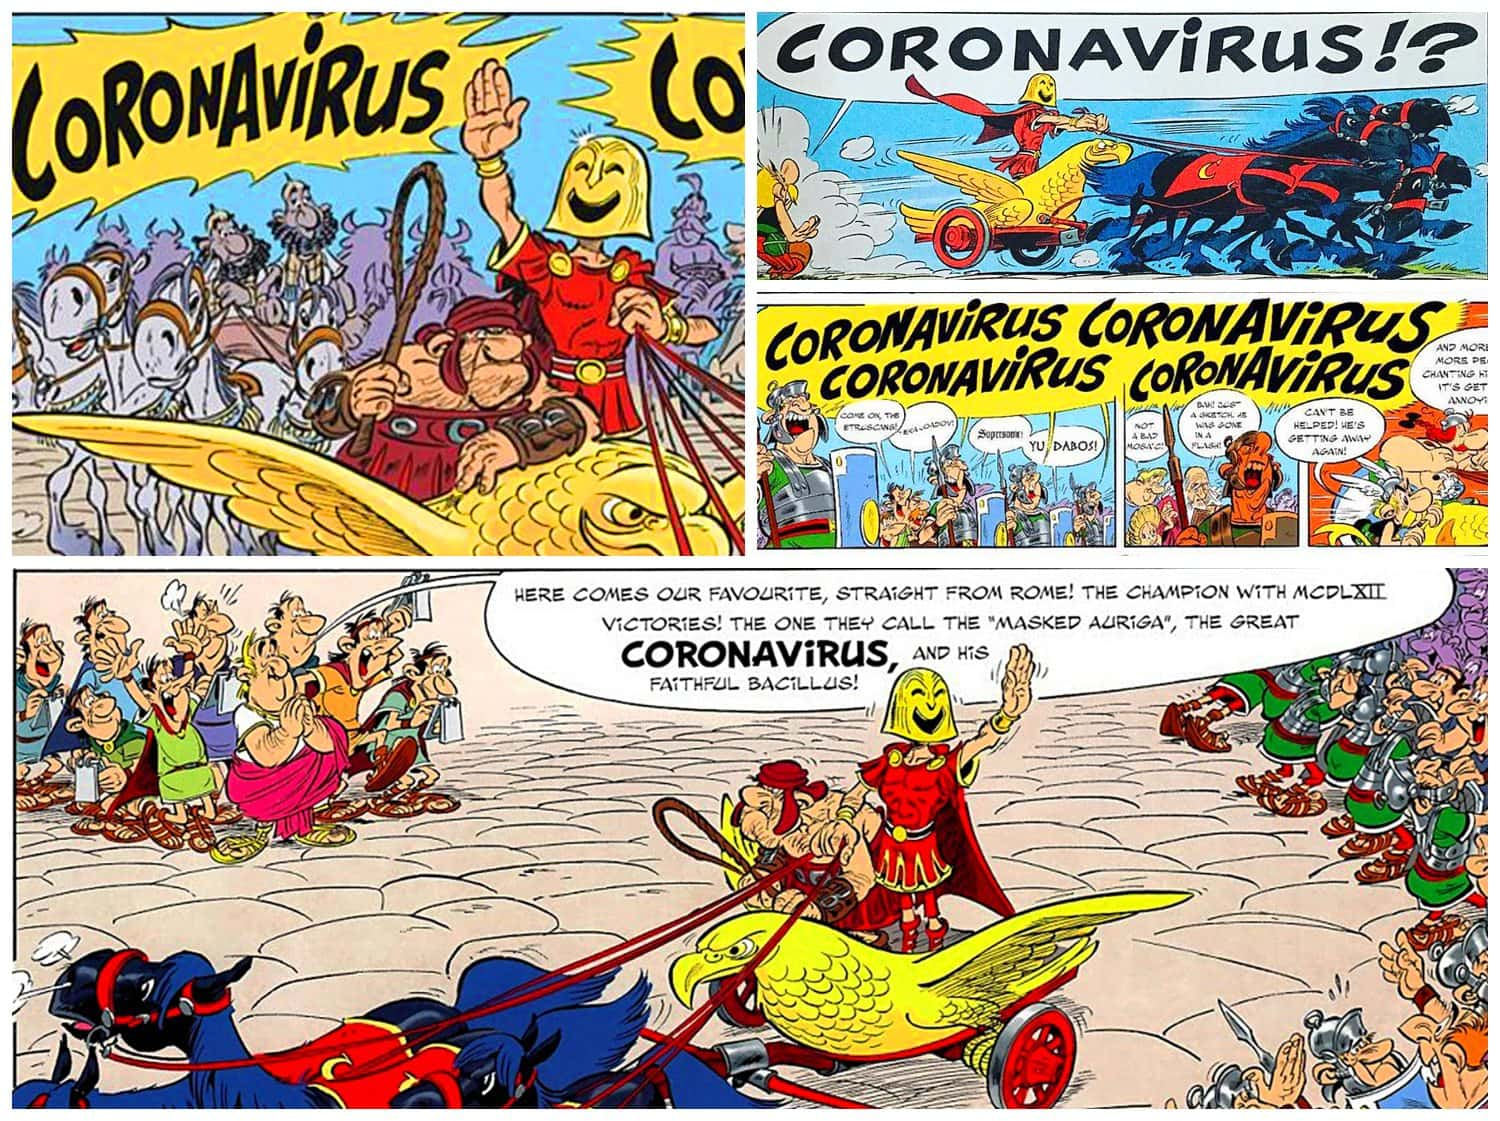 Astérix et la Transitalique - Asterix and the Chariot Race 2017 - Book dedicated to Coronavirus